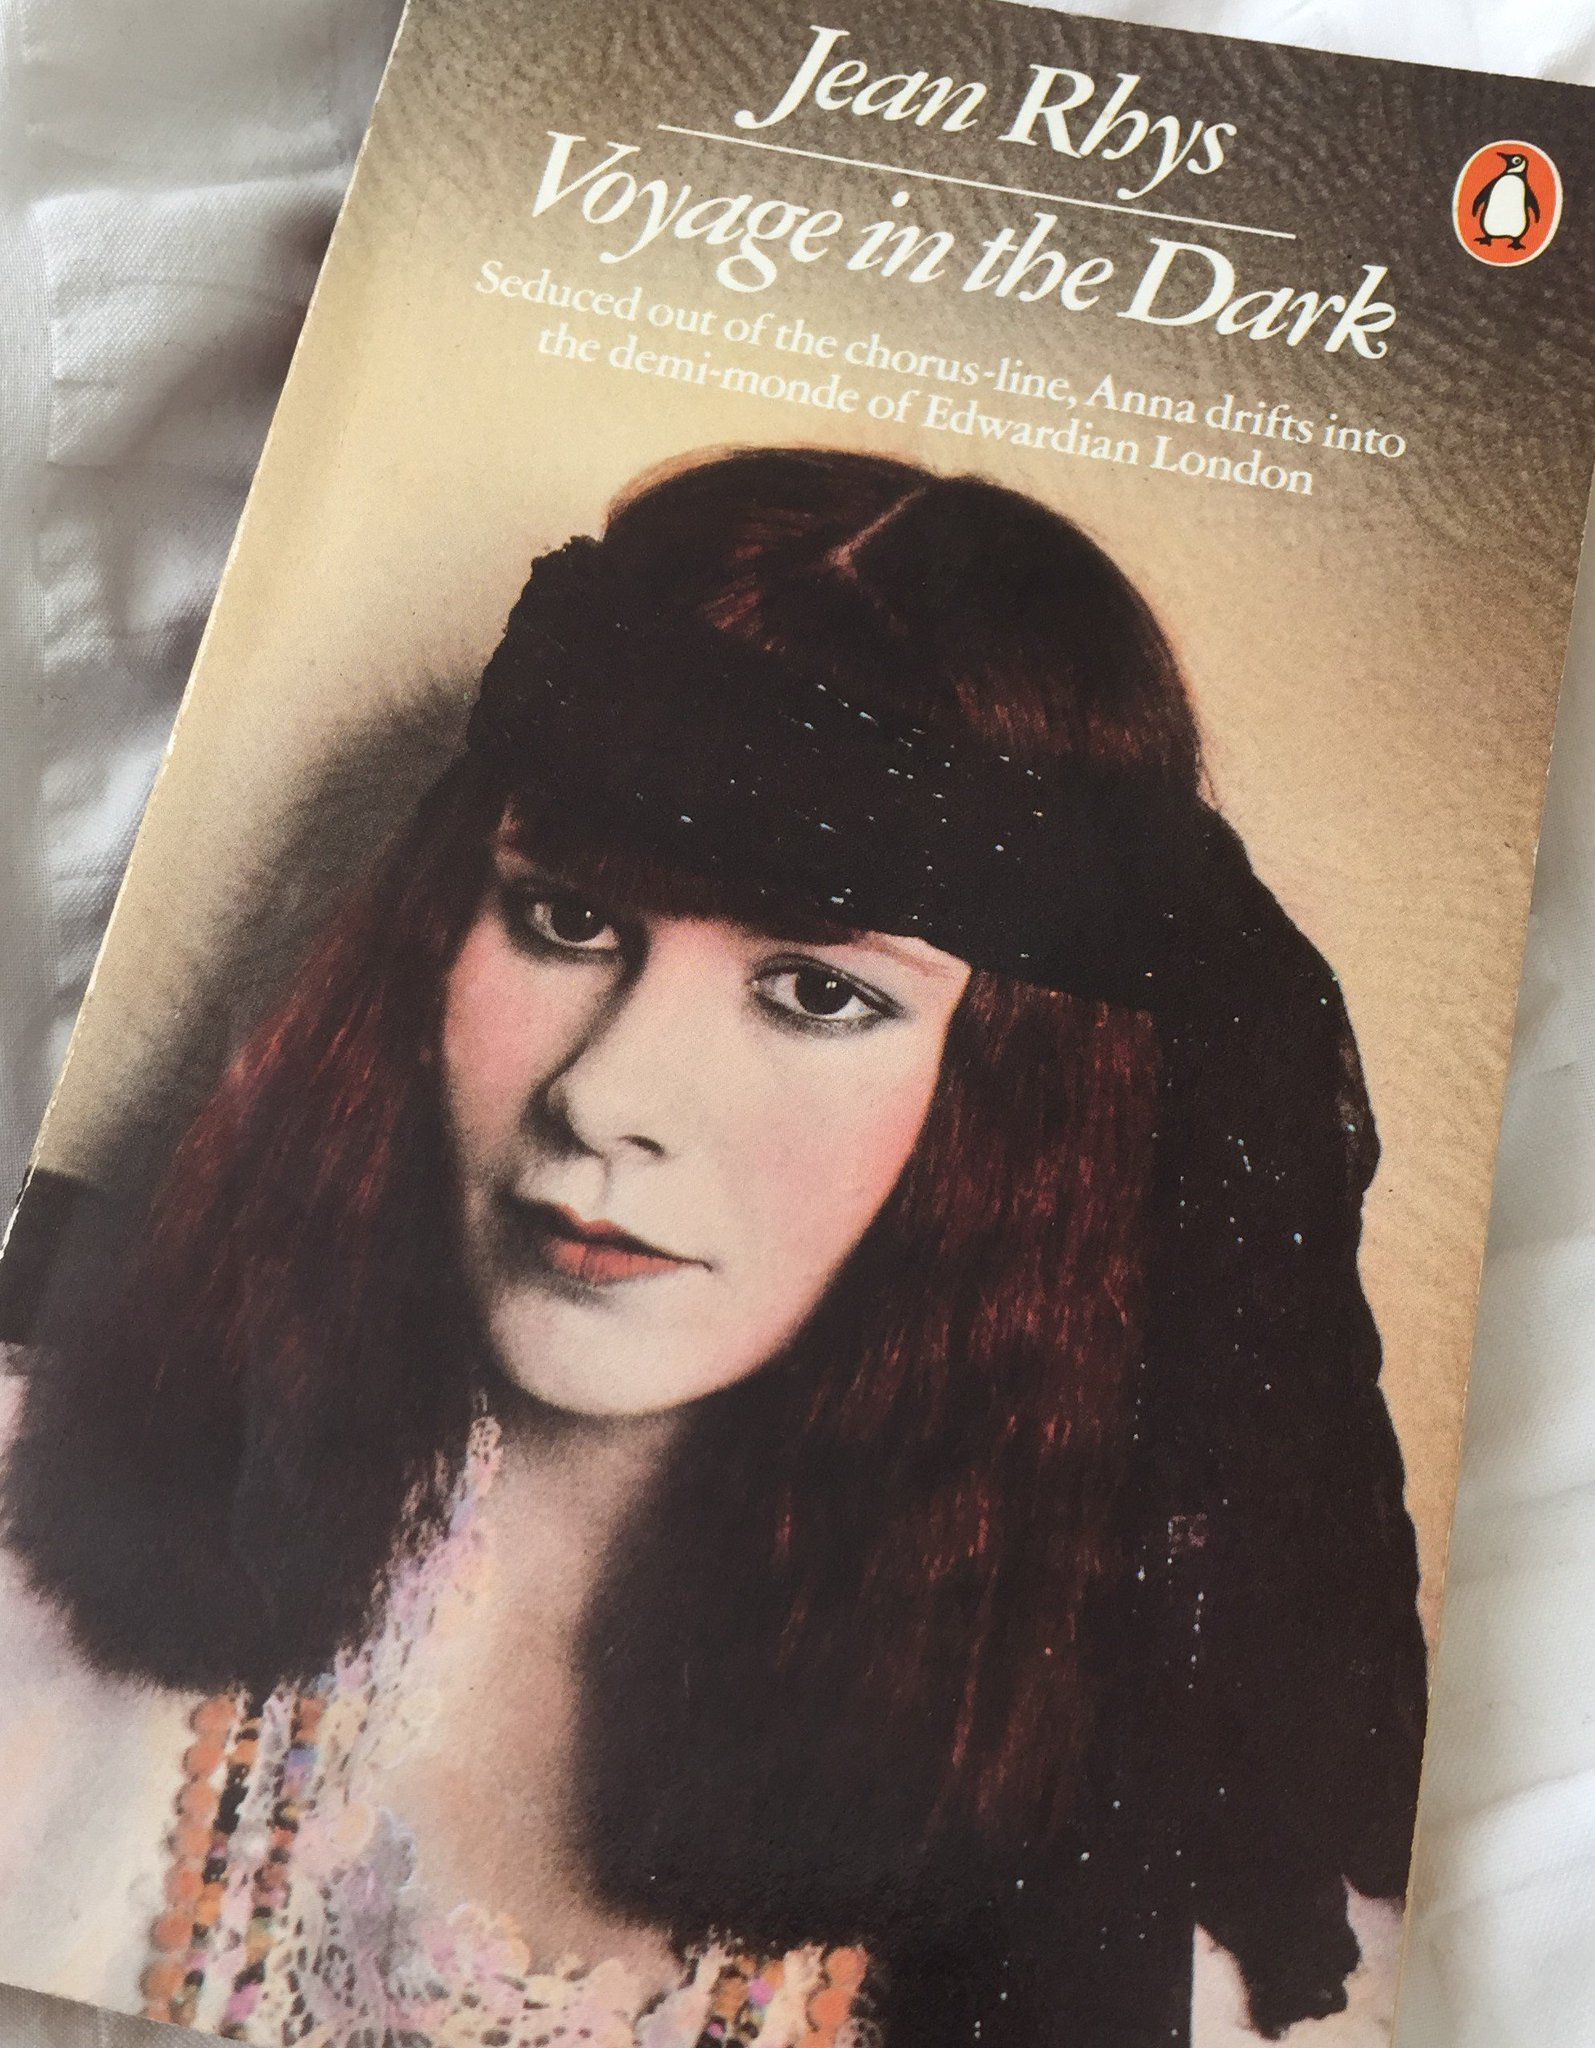 It's #ReadingRhys week. I'm all set to read Voyage in the Dark-I was 18 when I first read it https://t.co/PUxUwUHU8a https://t.co/owC5FrvpvQ